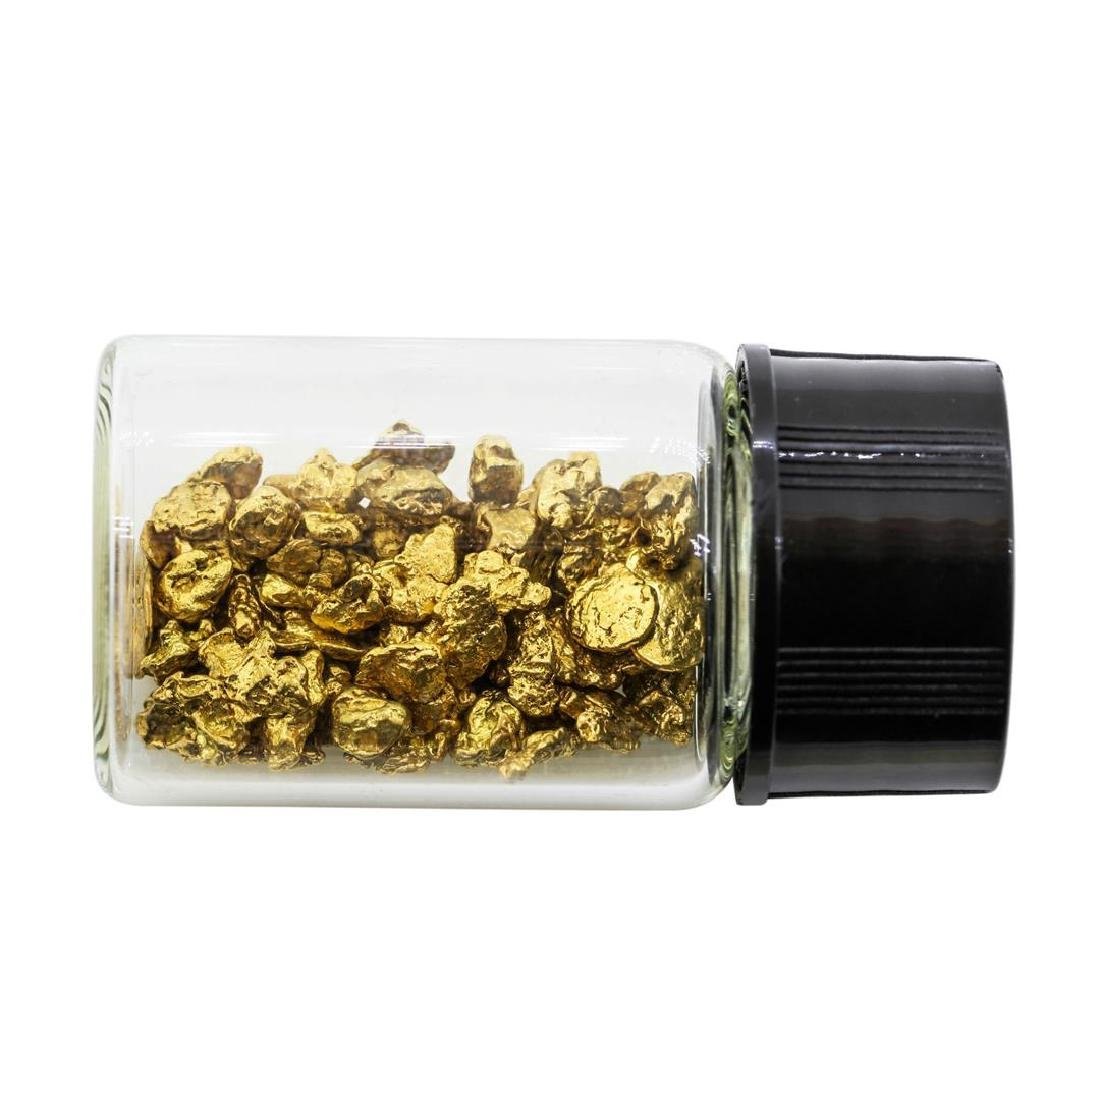 Lot of Gold Nuggets 14.2 grams Total Weight